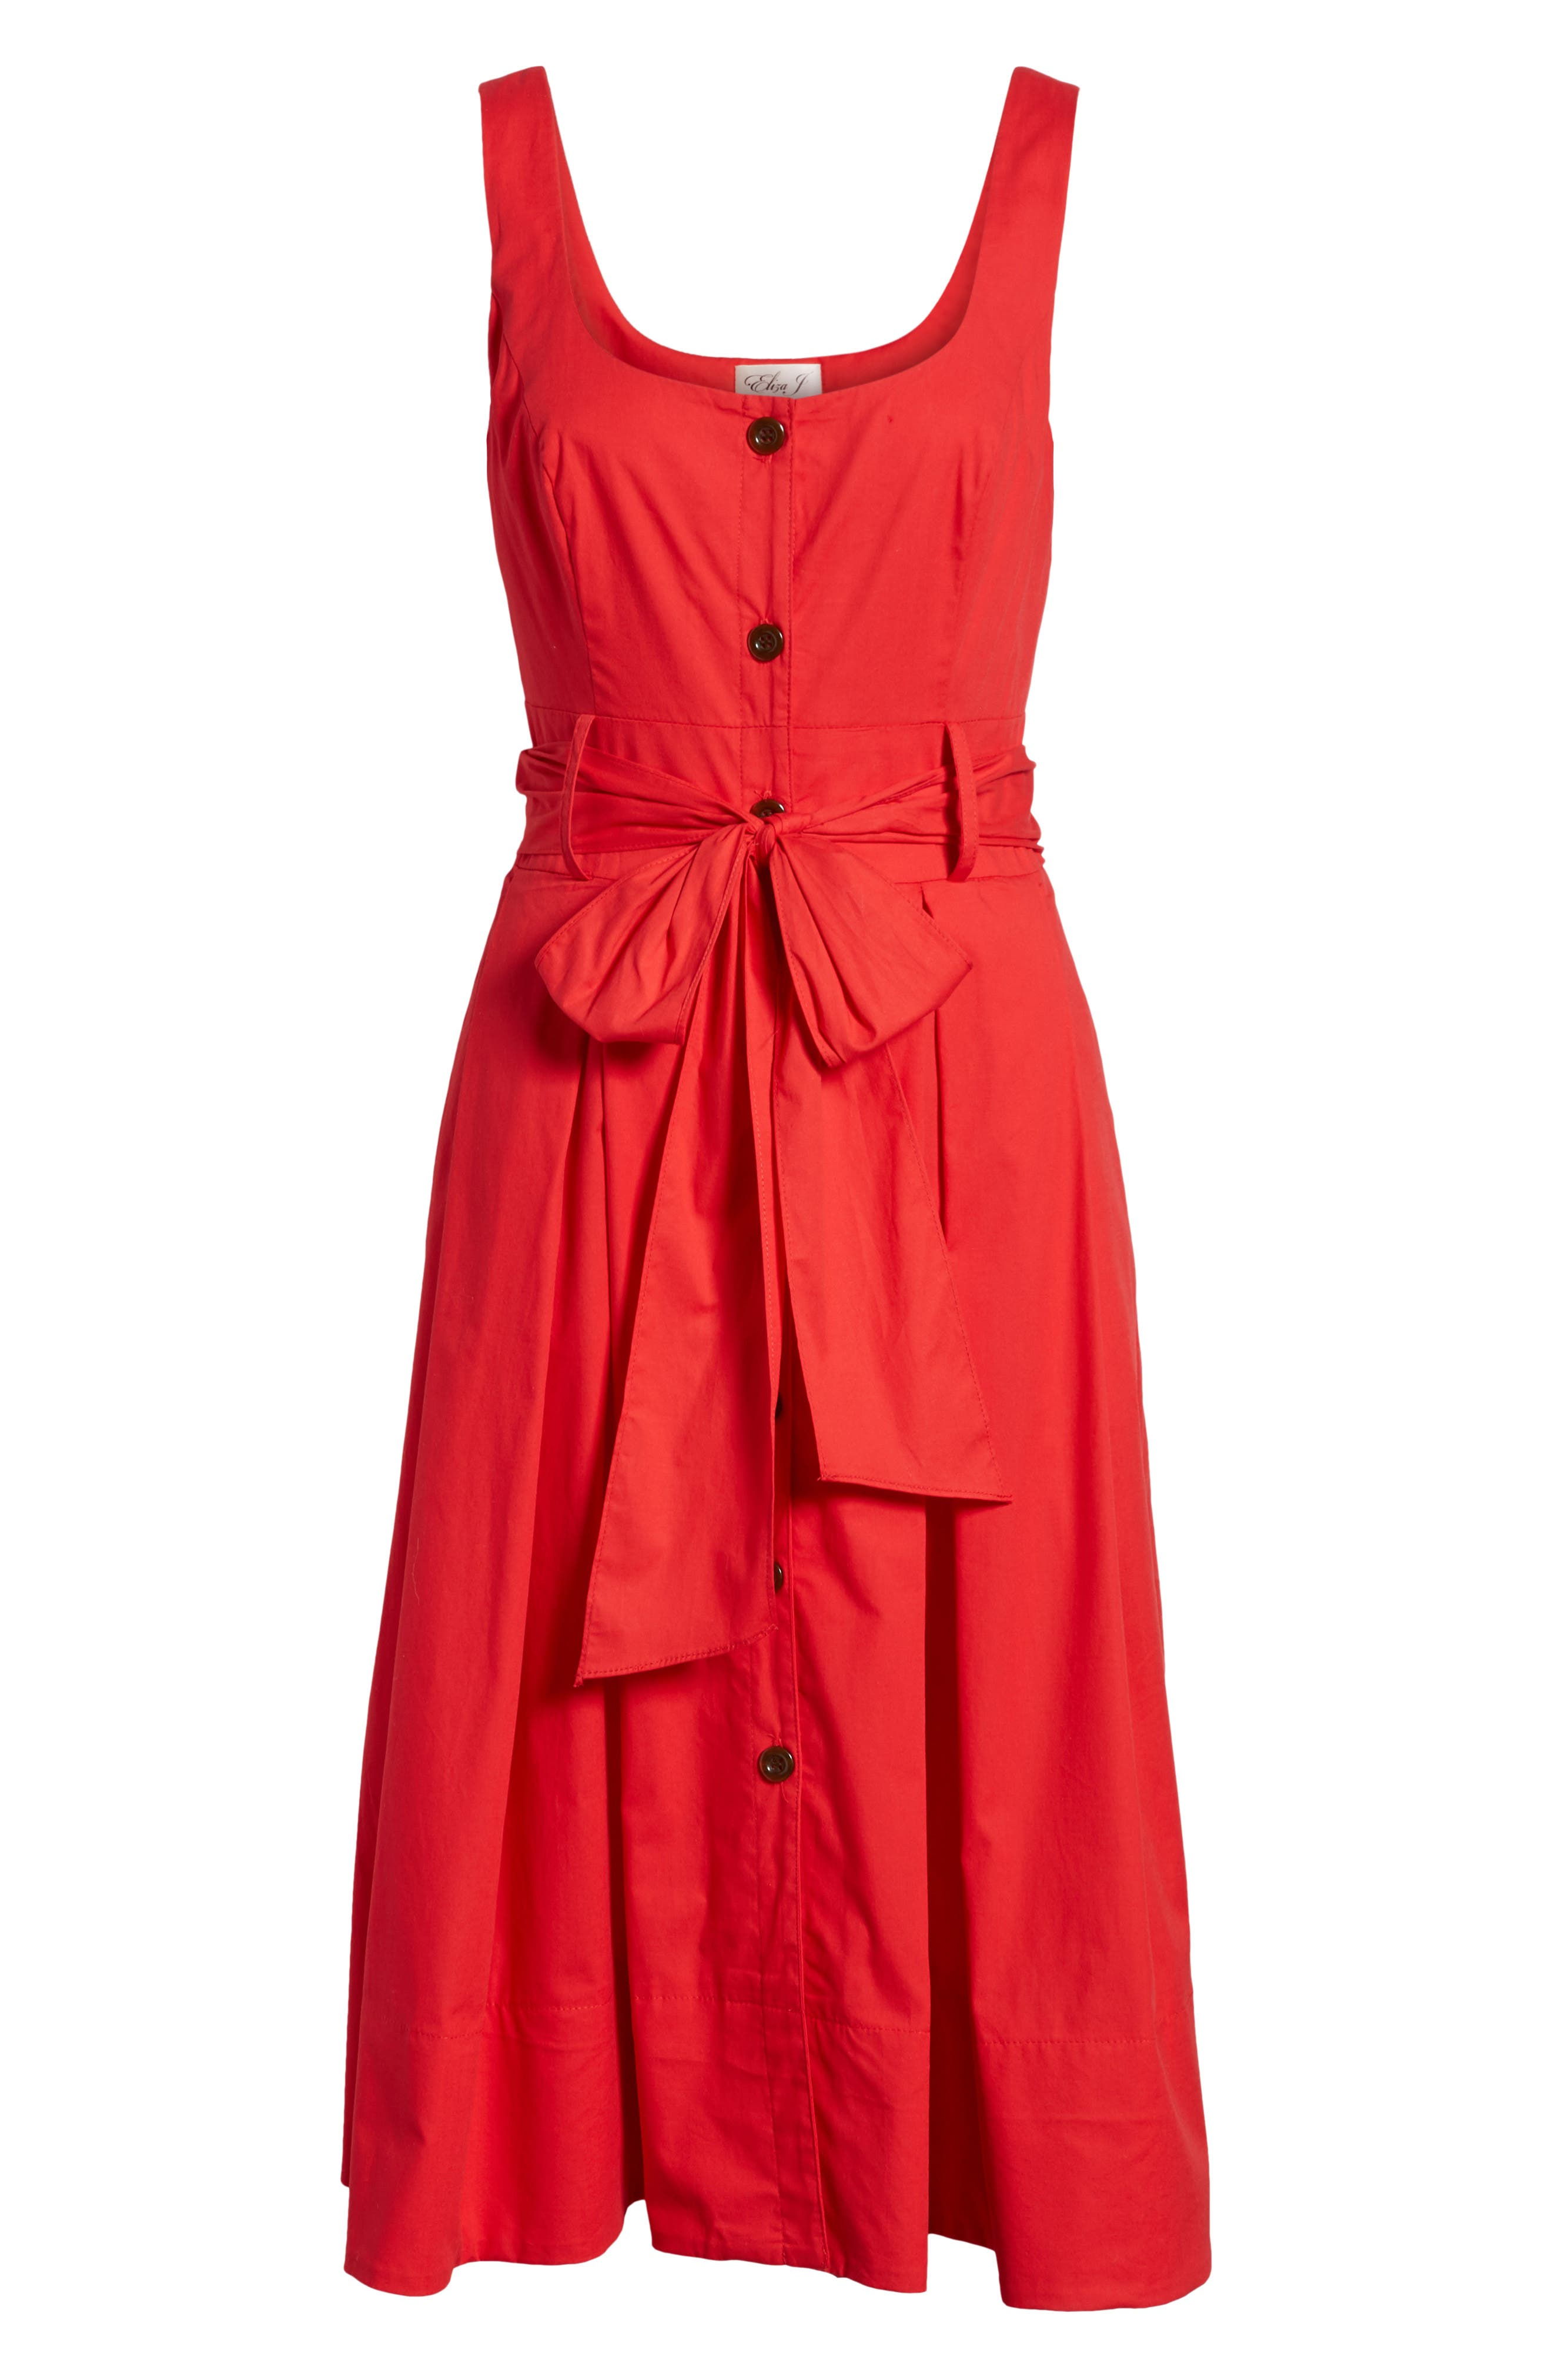 Button Front Fit & Flare Midi Dress,                             Alternate thumbnail 7, color,                             Red Saucy